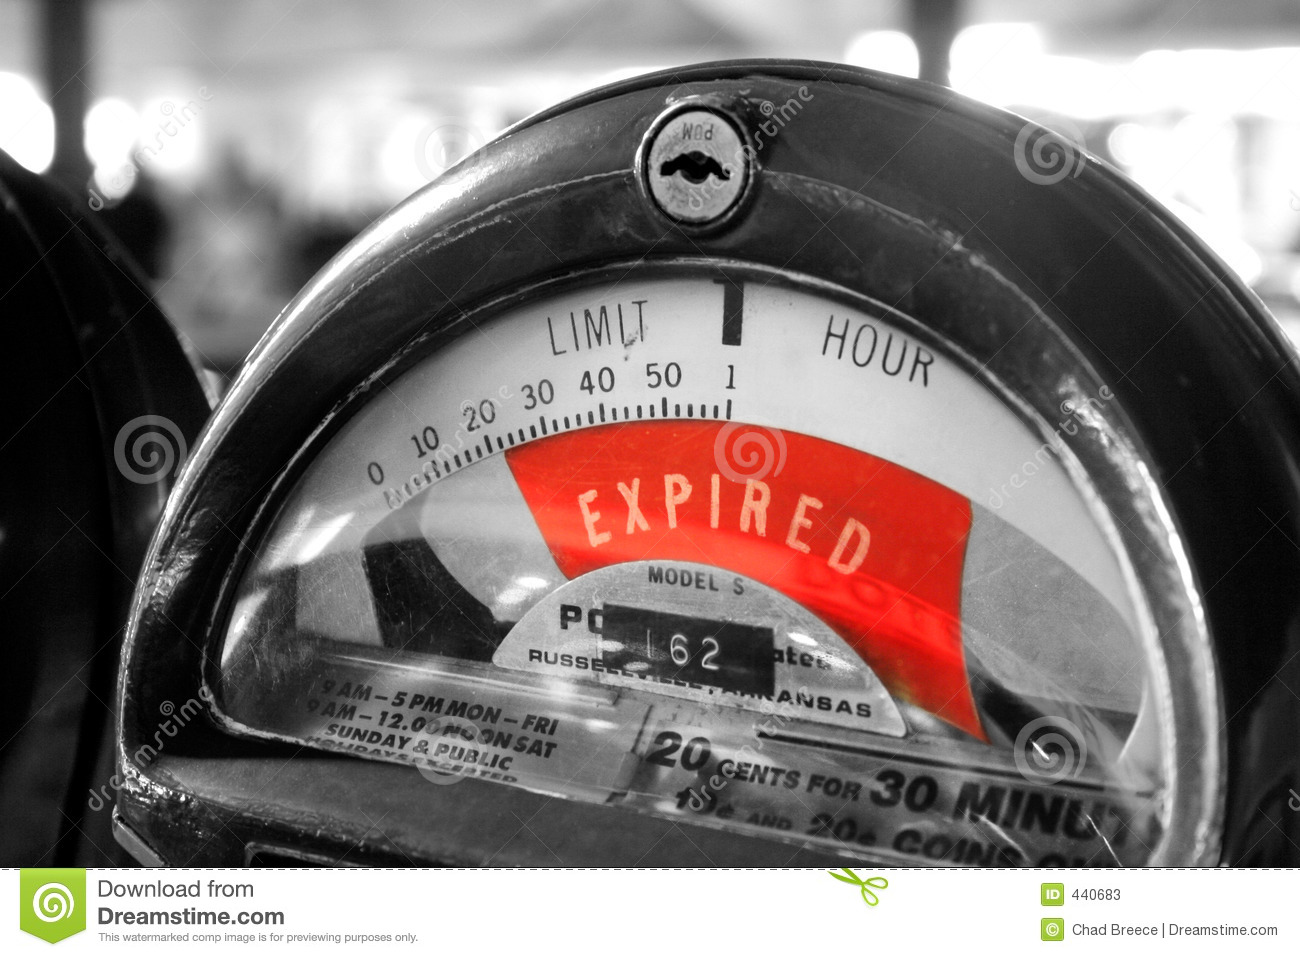 Your Time s Expired v4